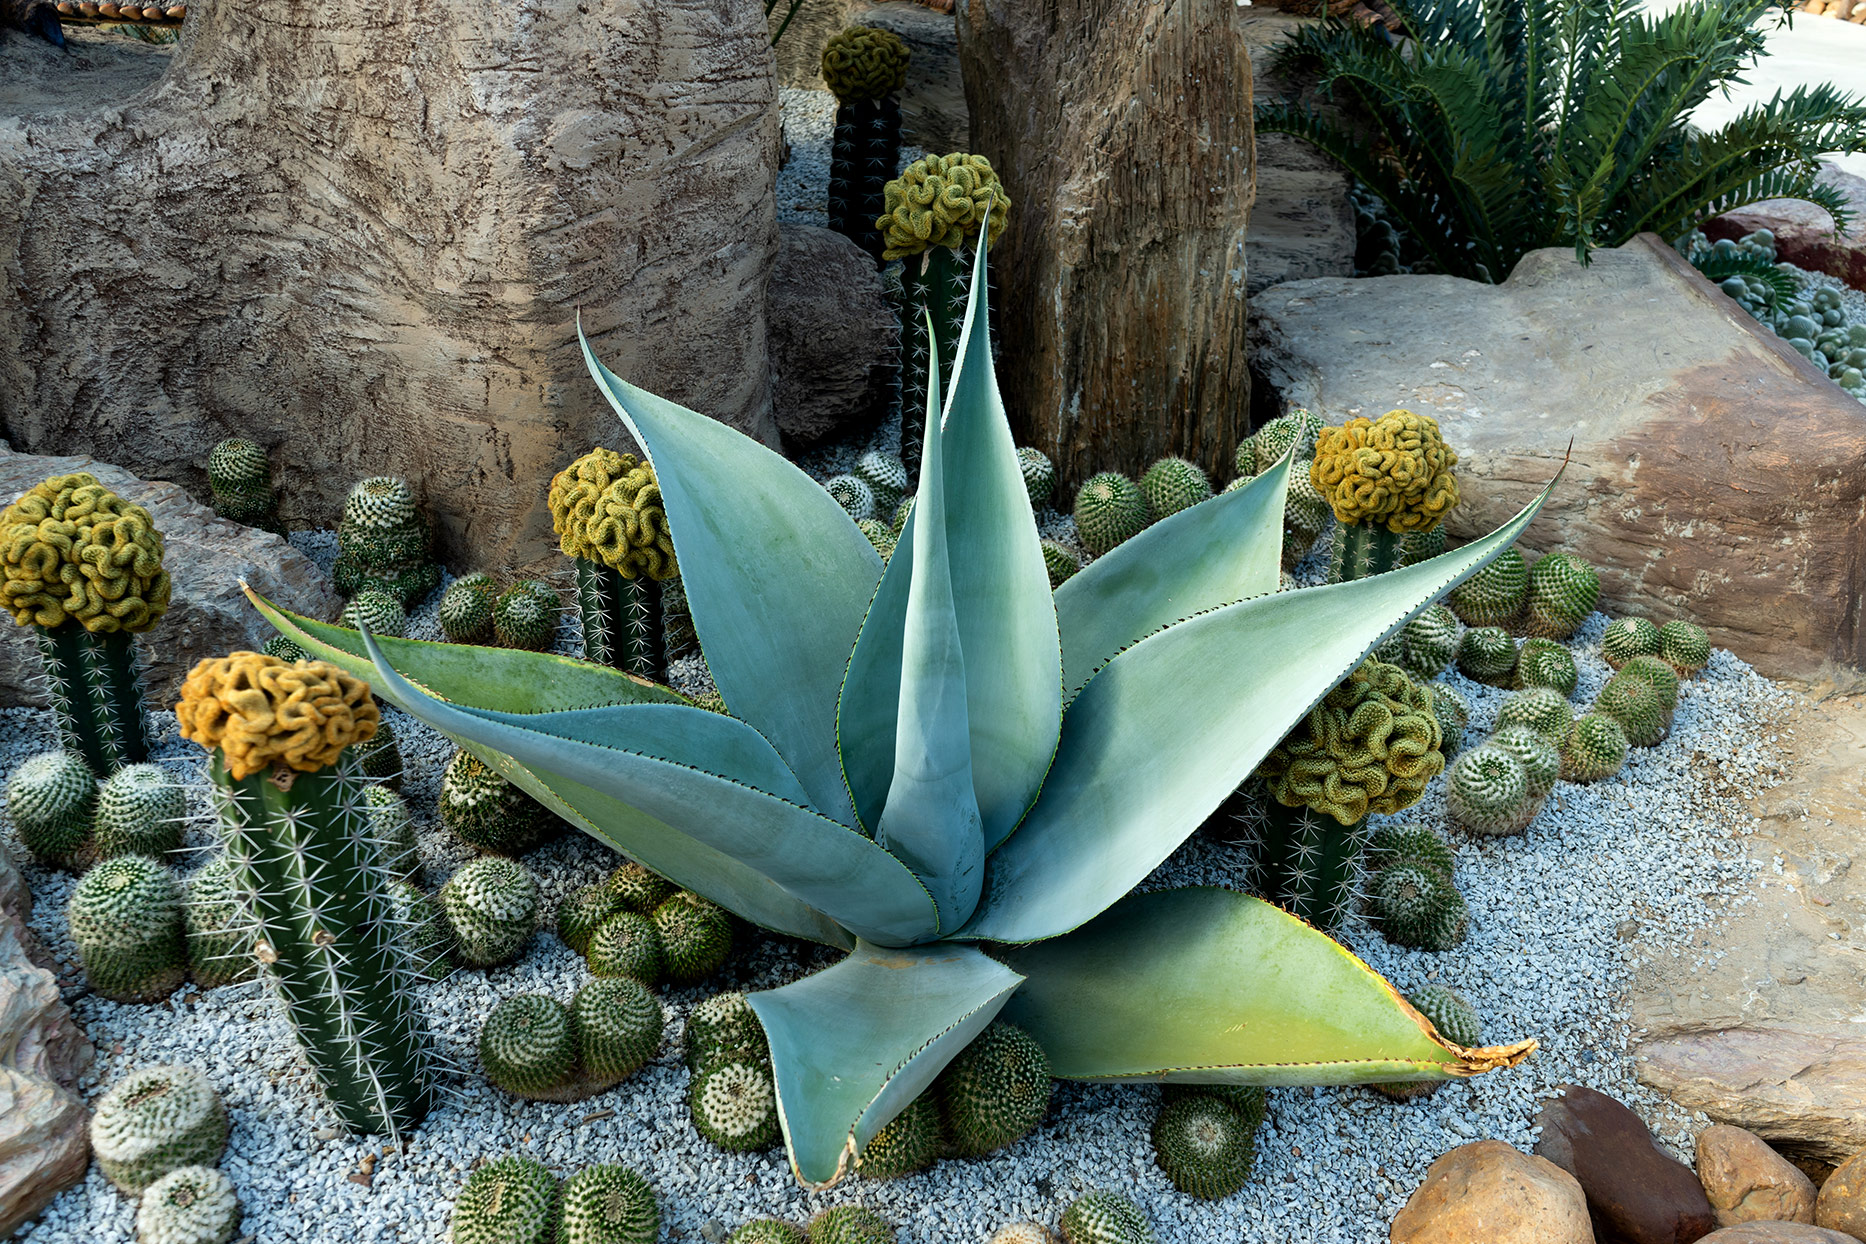 agave and cacti in garden